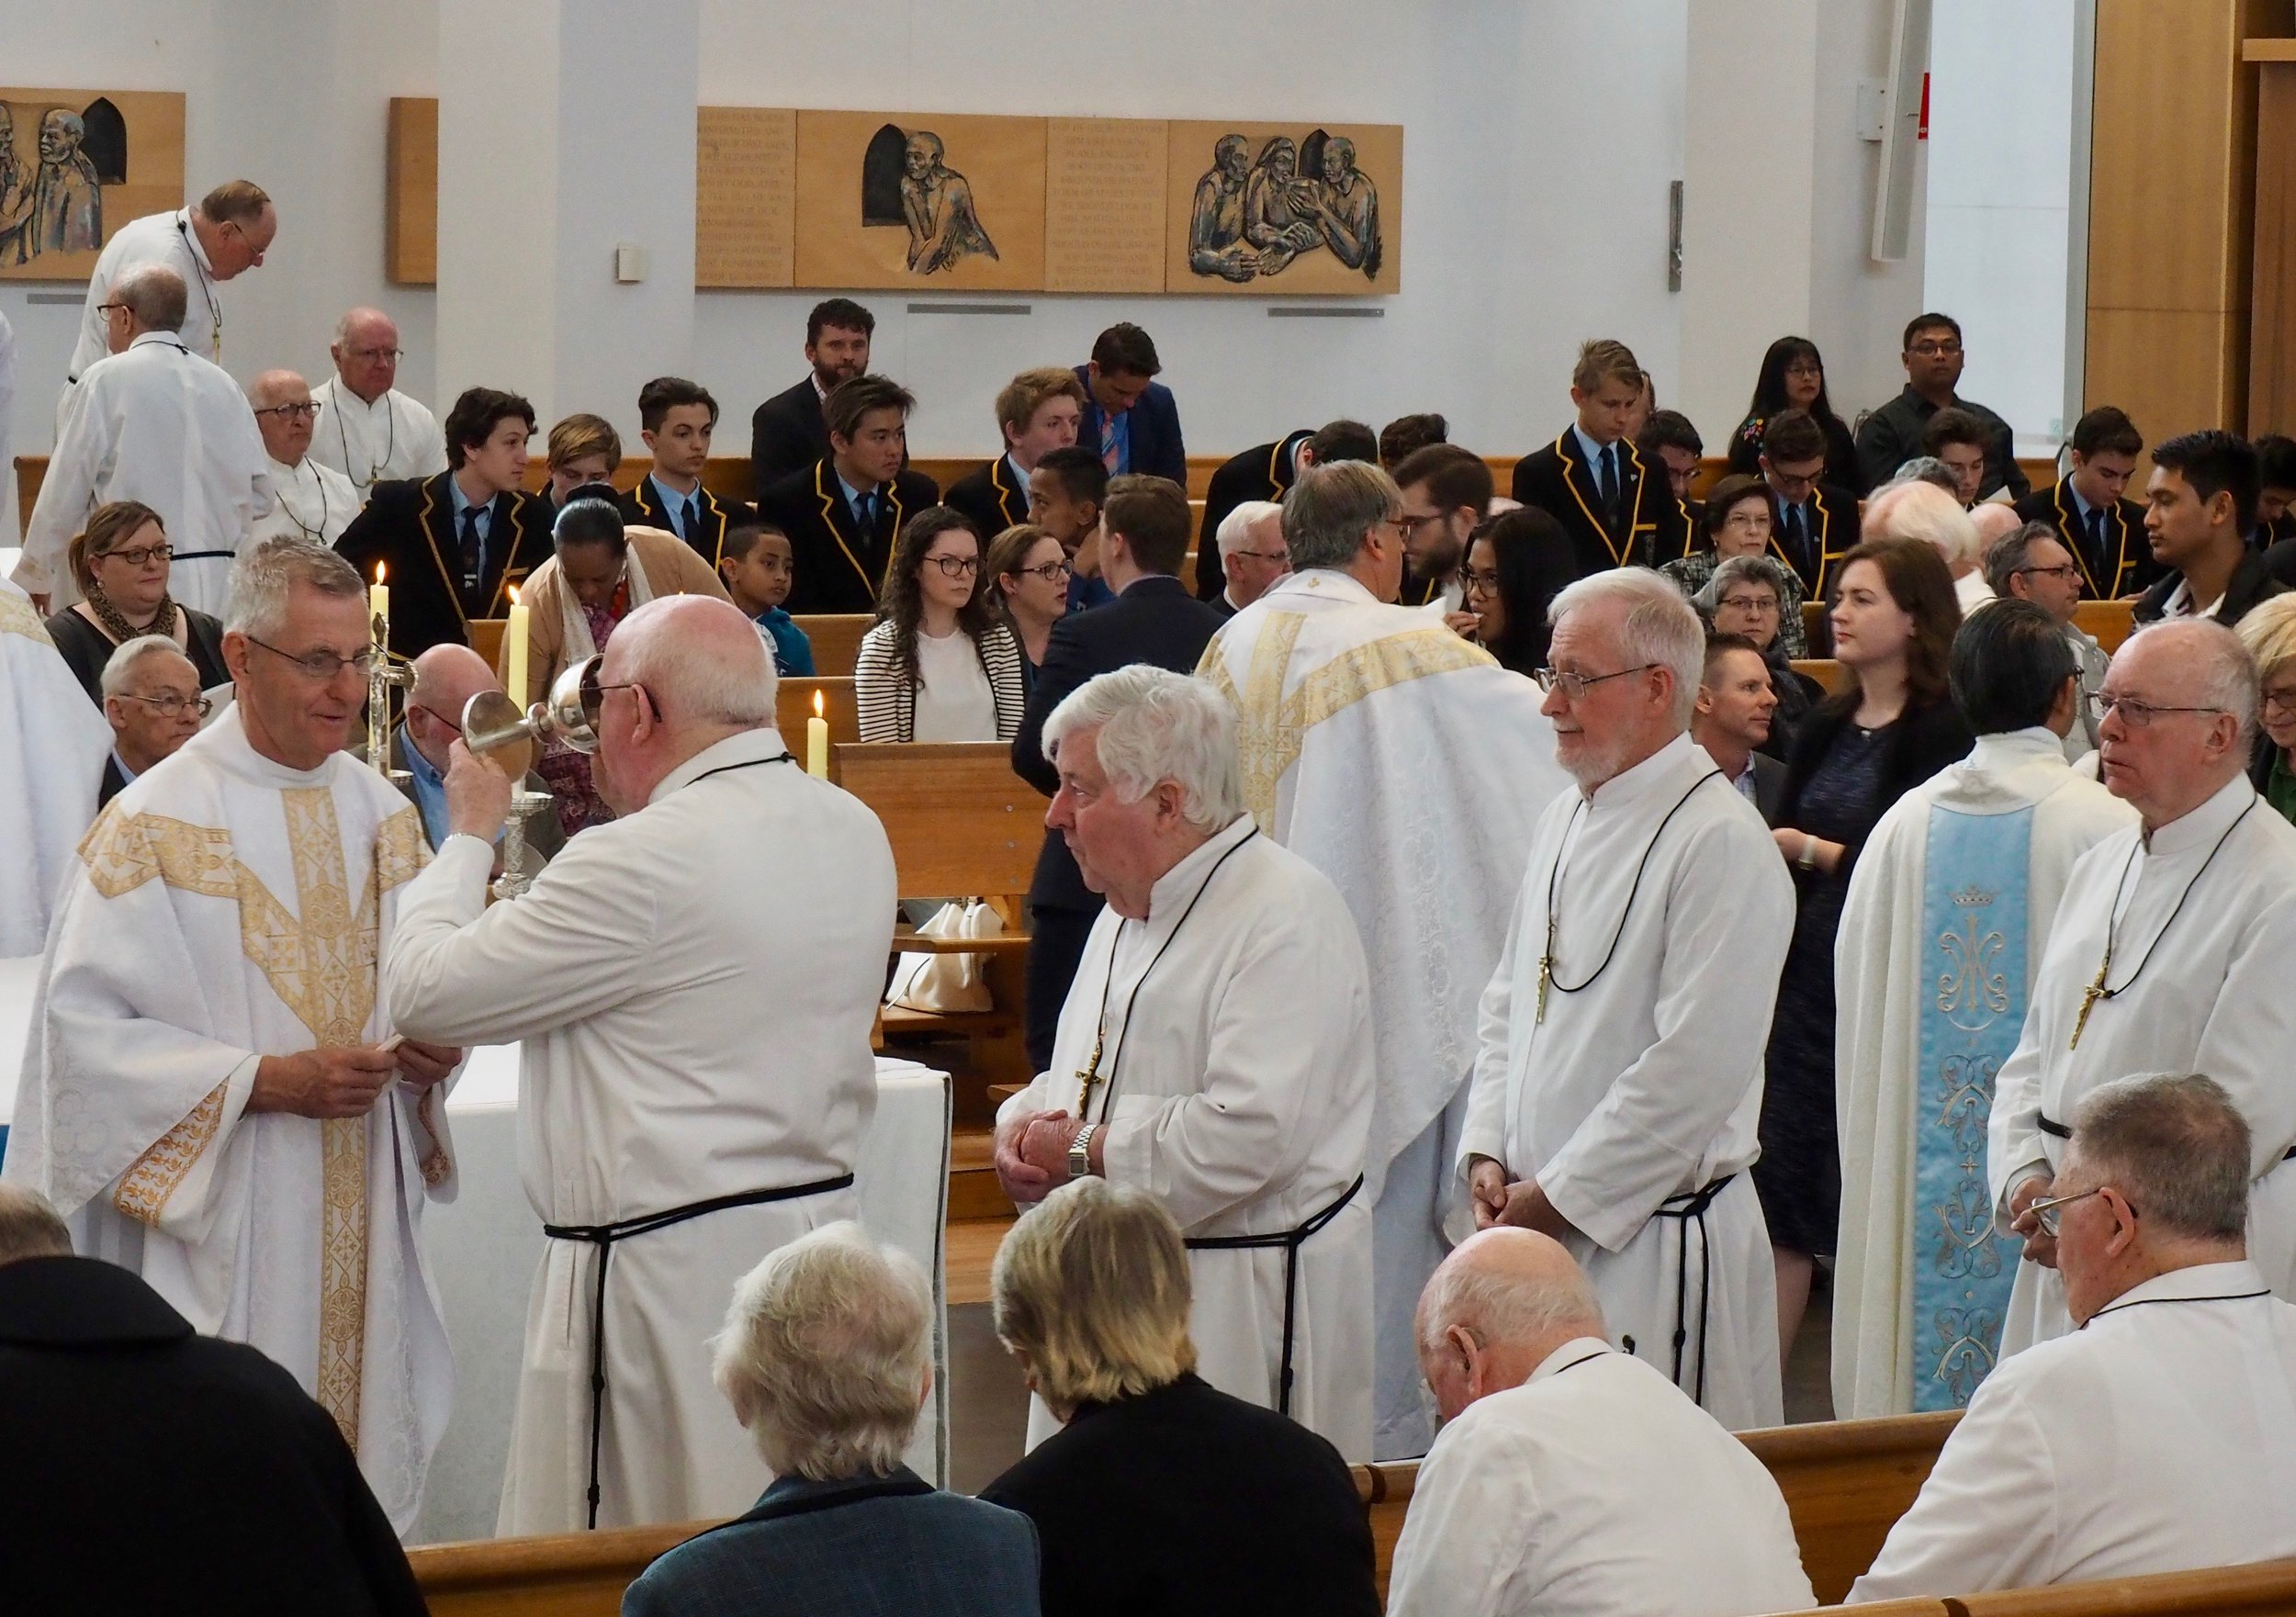 Bicentenary Mass Sydney 12 Aug 2017 Photos by Paul Harris 00058.jpg